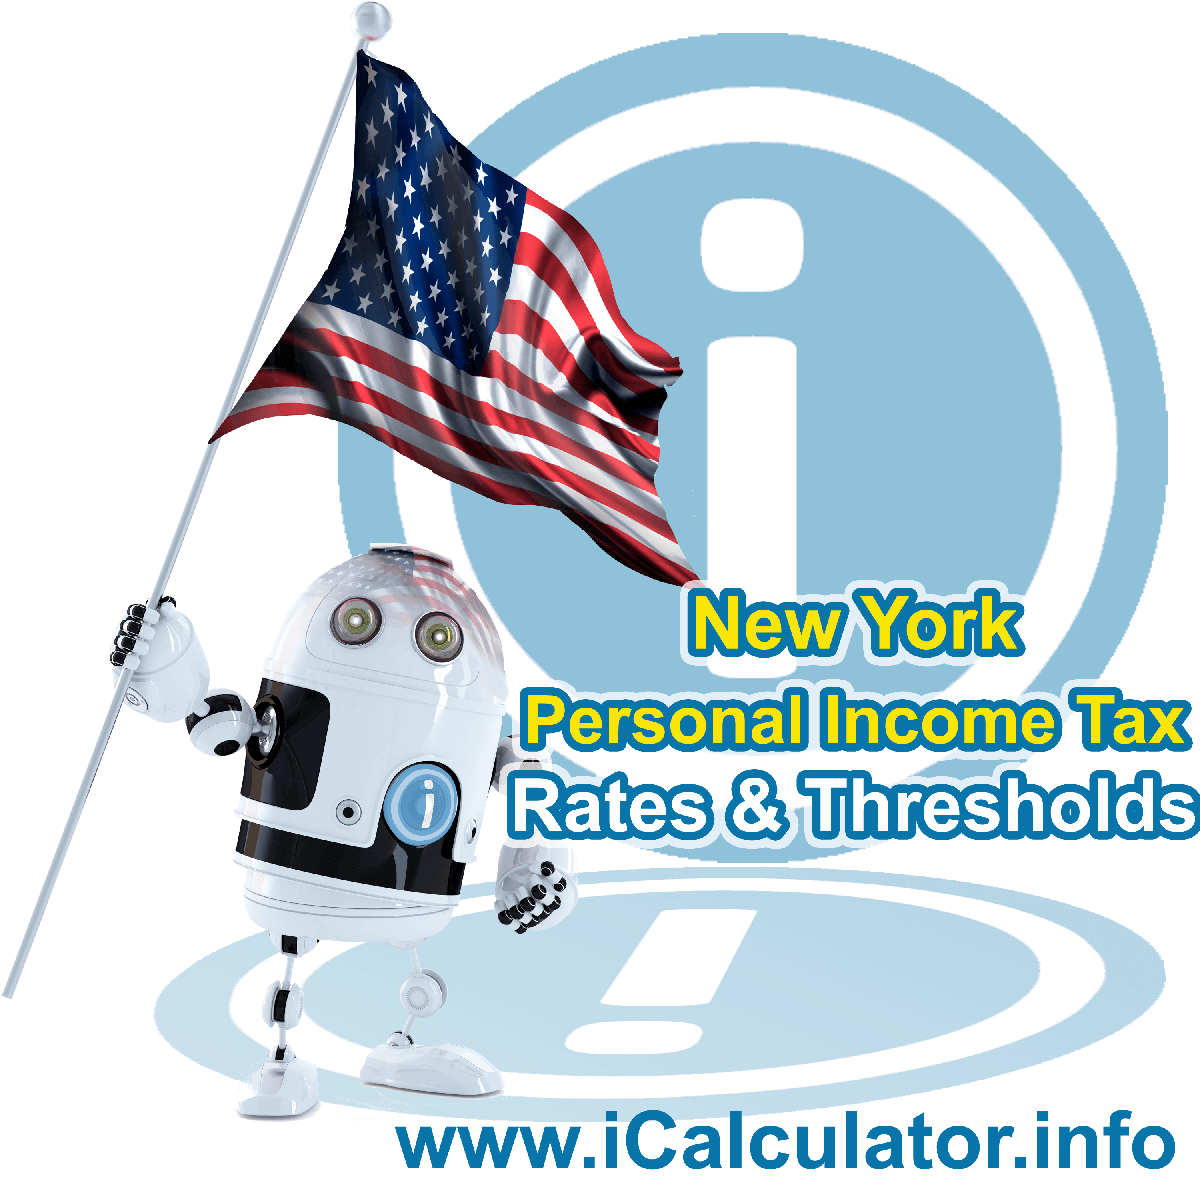 New York State Tax Tables 2021. This image displays details of the New York State Tax Tables for the 2021 tax return year which is provided in support of the 2021 US Tax Calculator